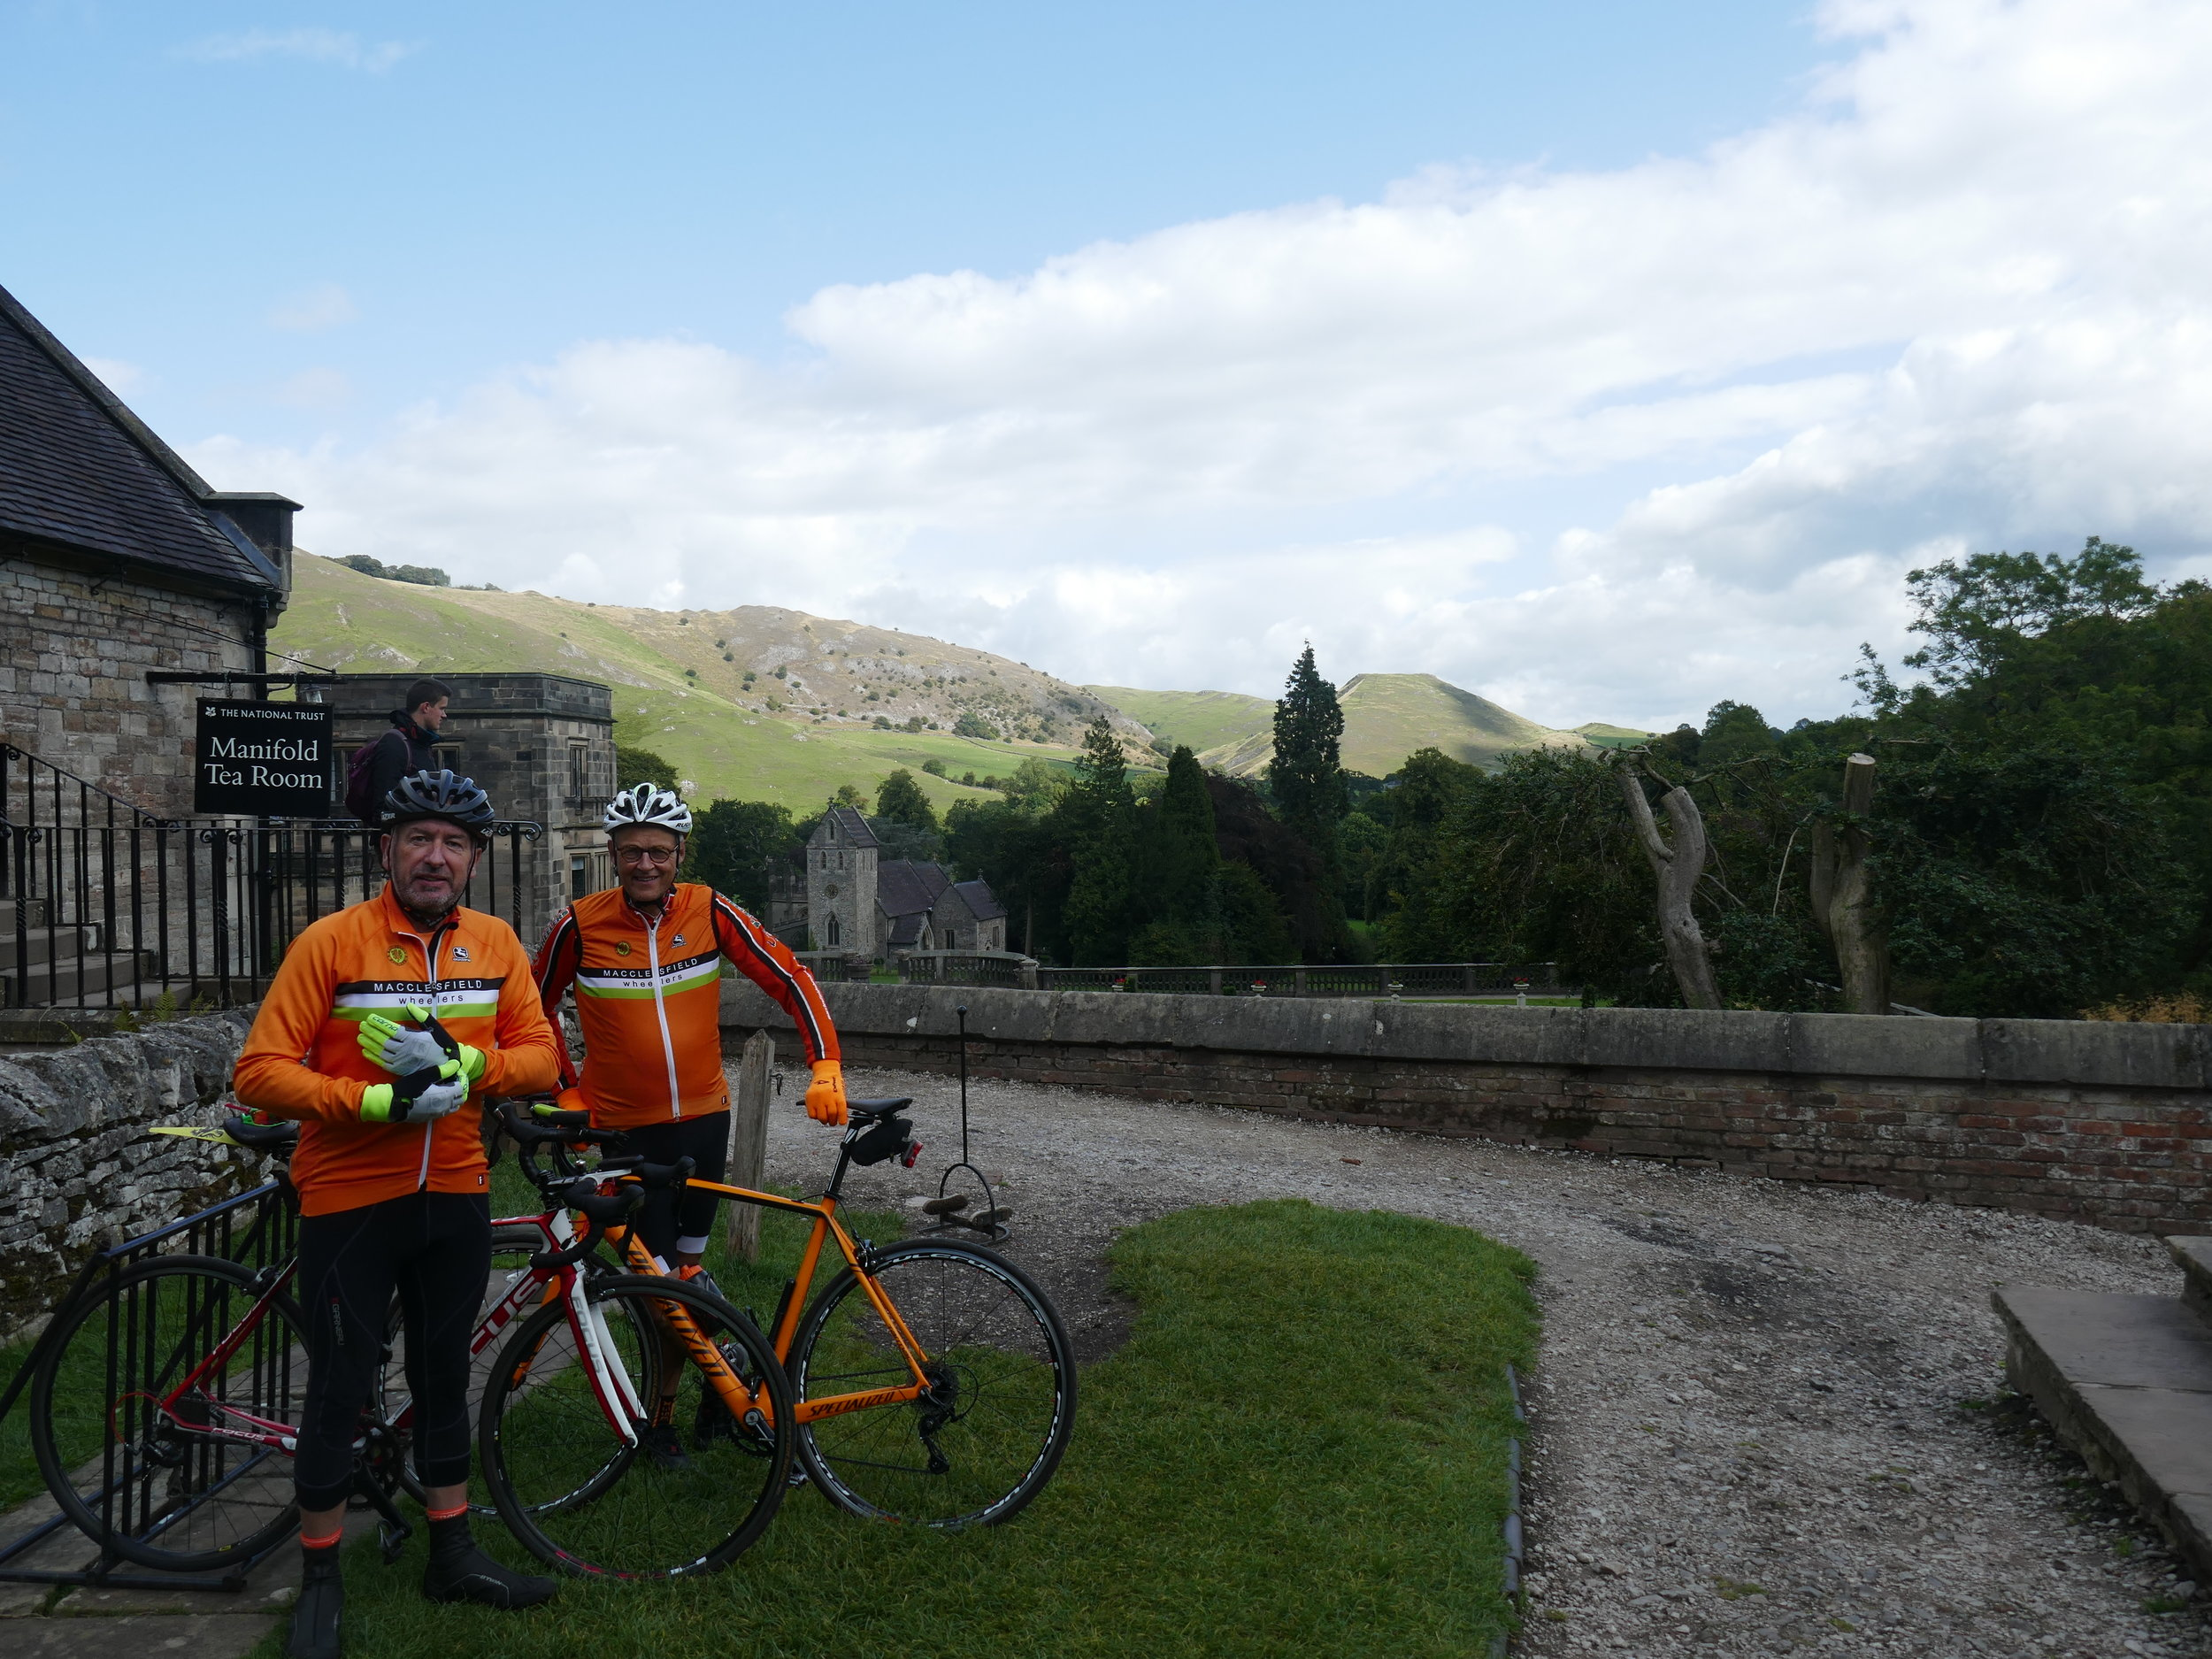 Pete and Chris at Ilam Park cafe